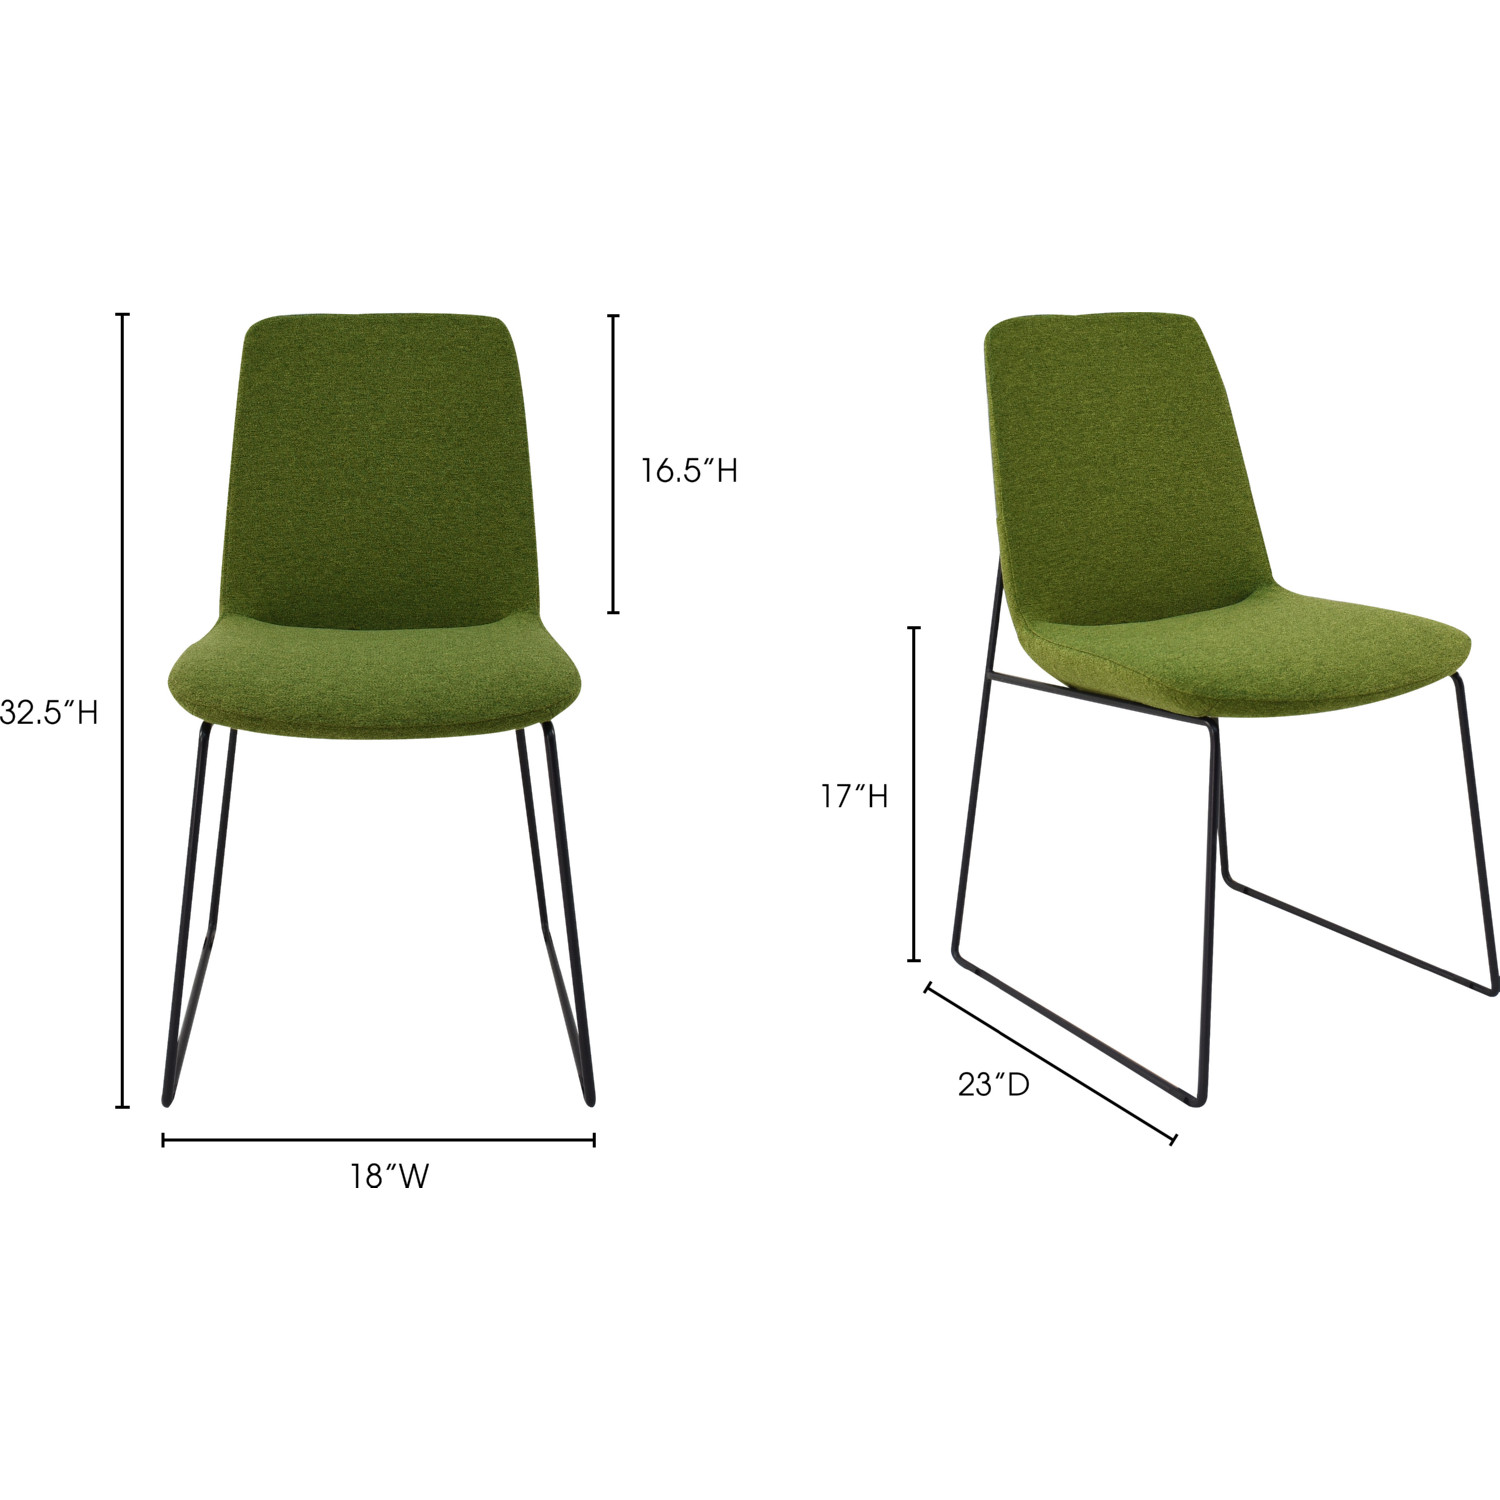 Wondrous Ruth Dining Chair In Green Fabric On Steel Frame Set Of 2 By Moes Home Collection Bralicious Painted Fabric Chair Ideas Braliciousco